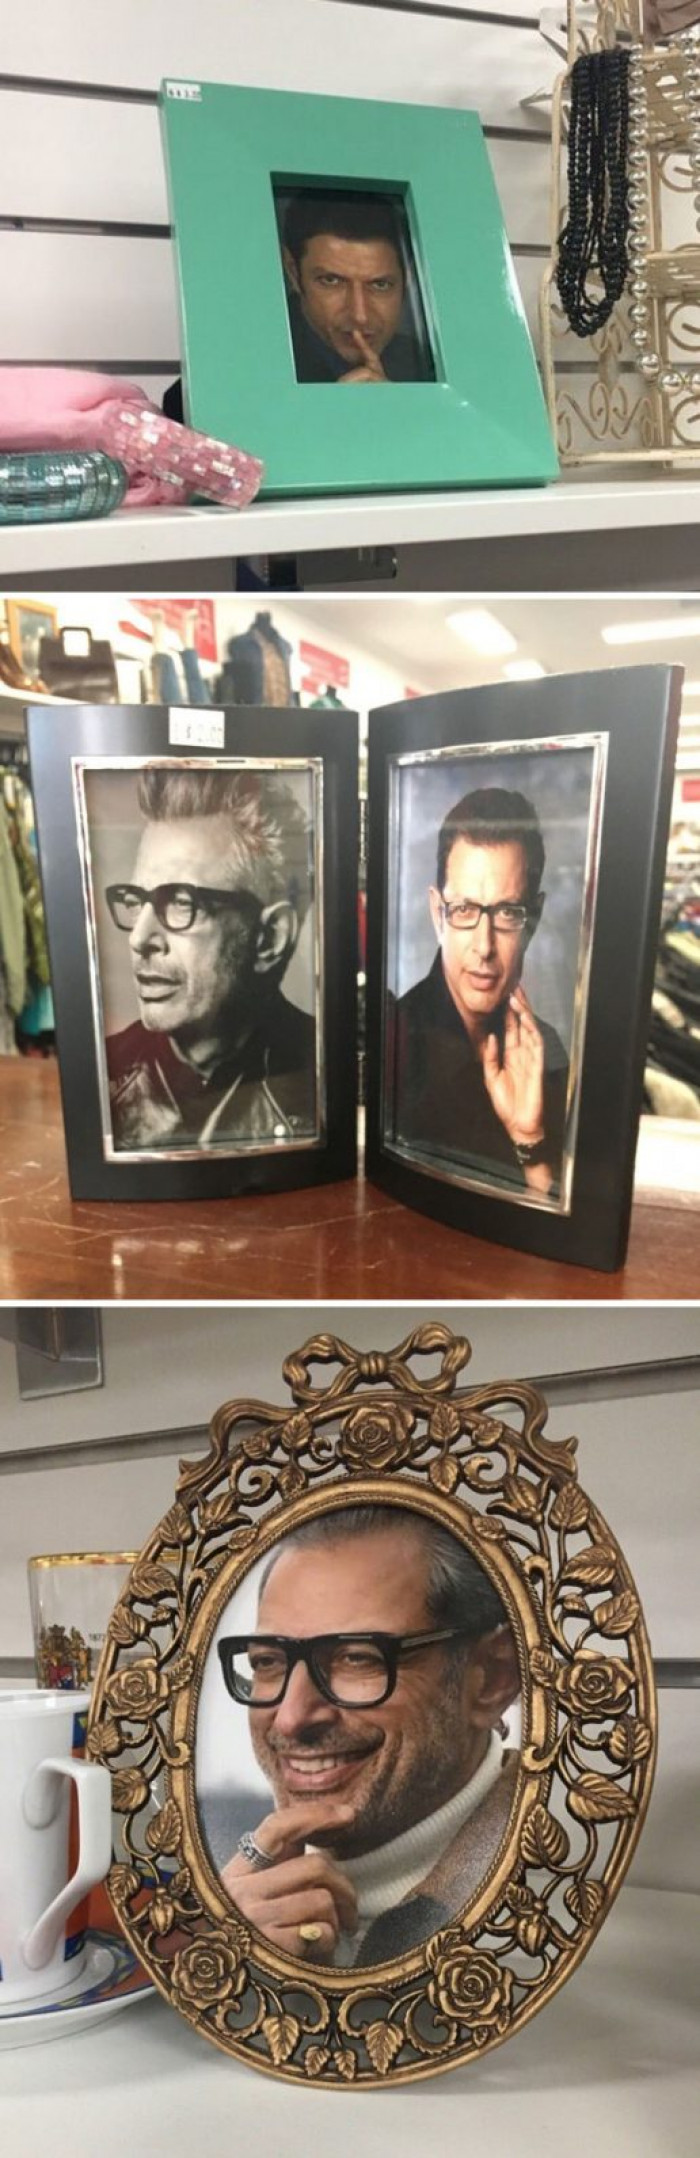 This coworker included a photo of Jeff Goldblum in every frame for sale